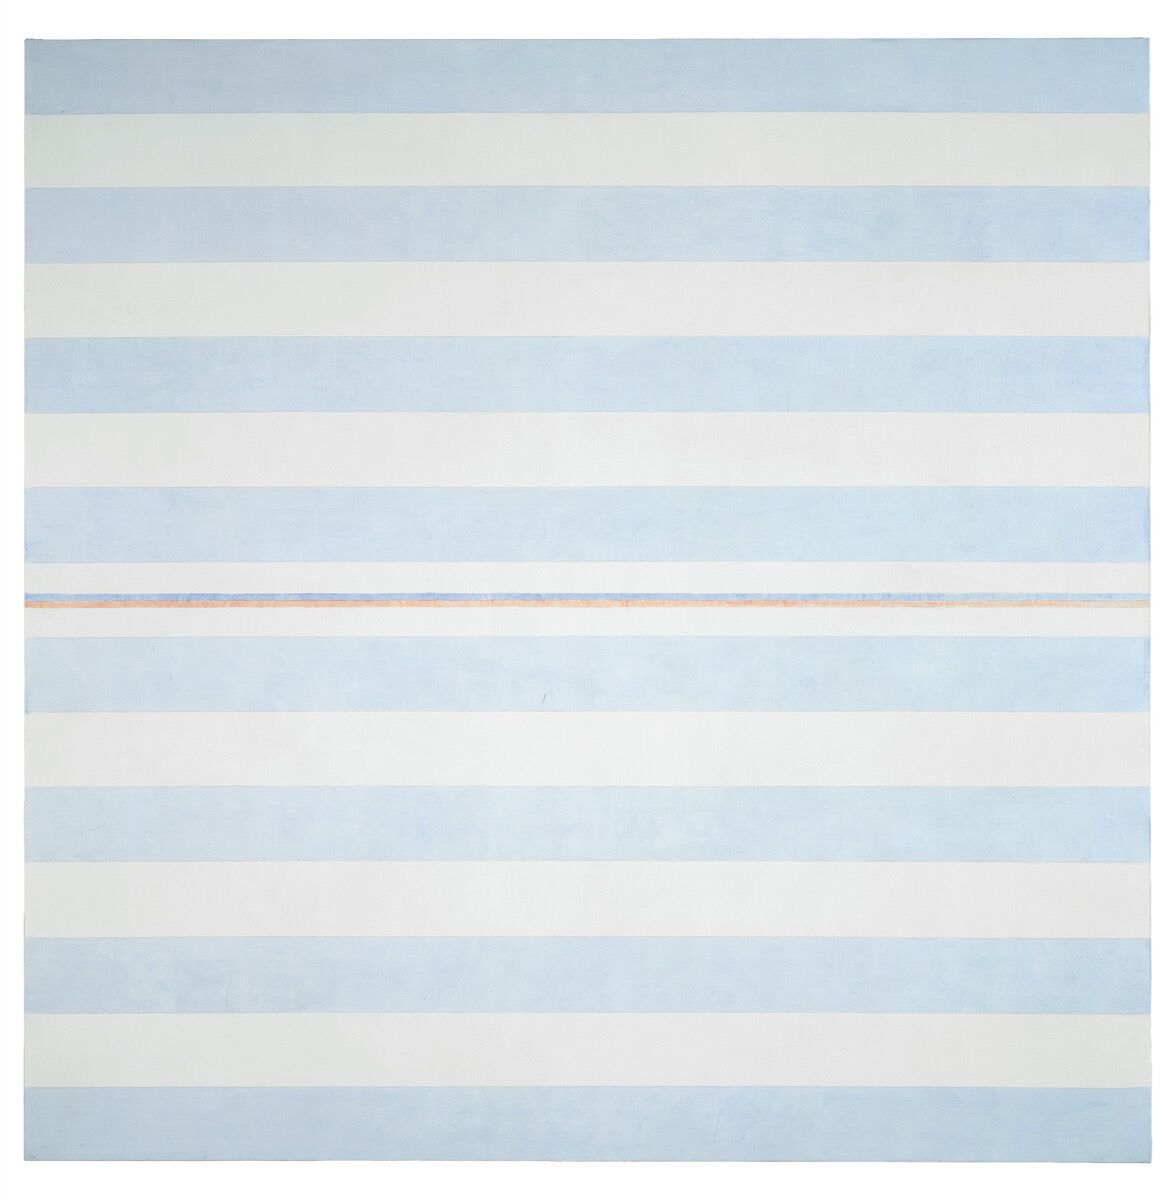 Agnes Martin, Blessings, 2000. © 2018 Estate of Agnes Martin / Artists Rights Society (ARS), New York. Courtesy of Pace.